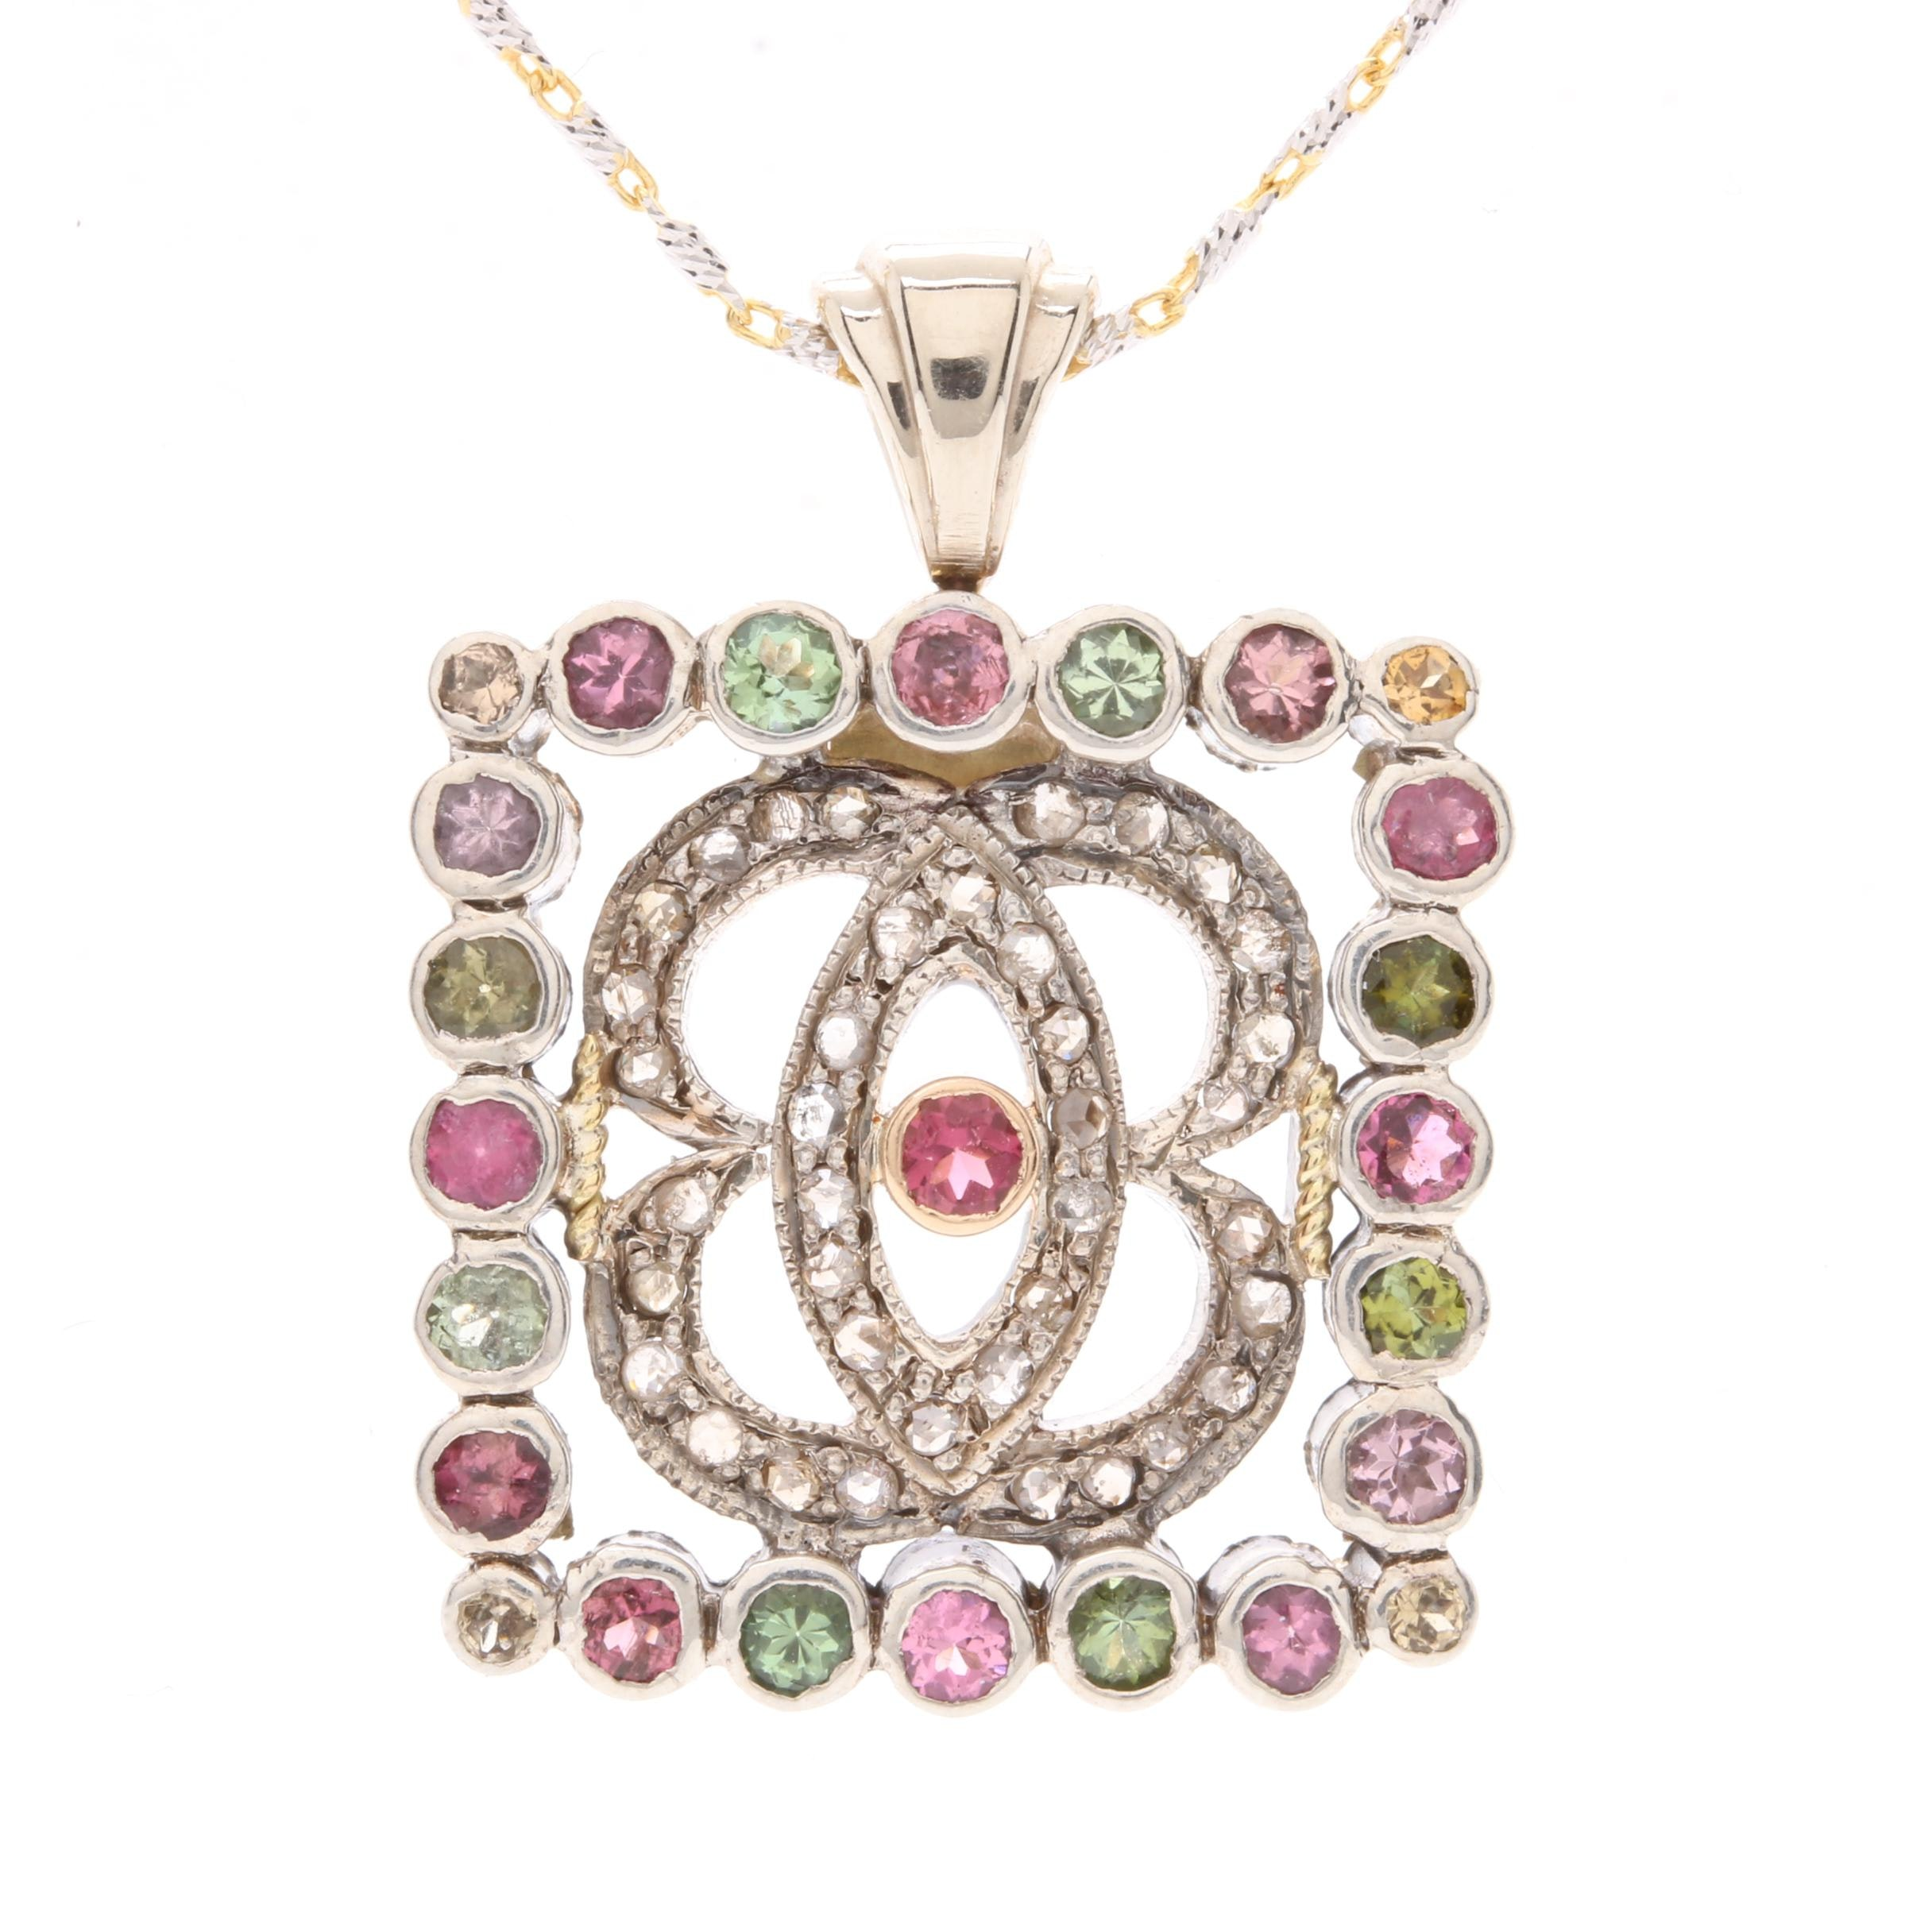 14K White Gold and 800 Silver Diamond and Tourmaline Necklace